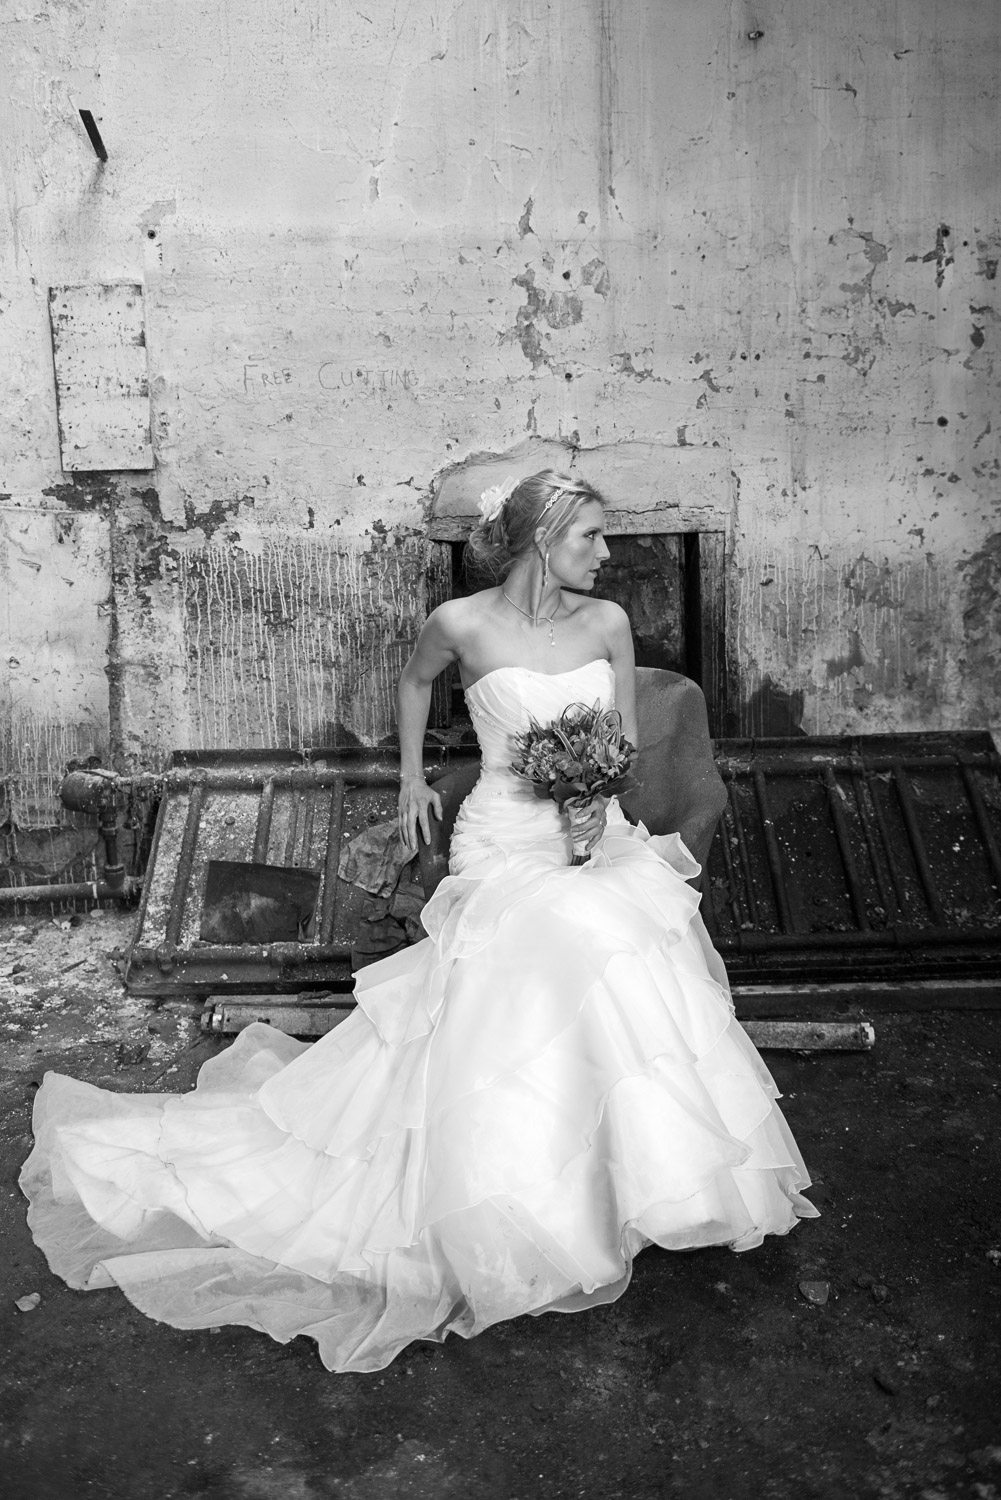 Click image to see 'Abandoned Mill' shoot